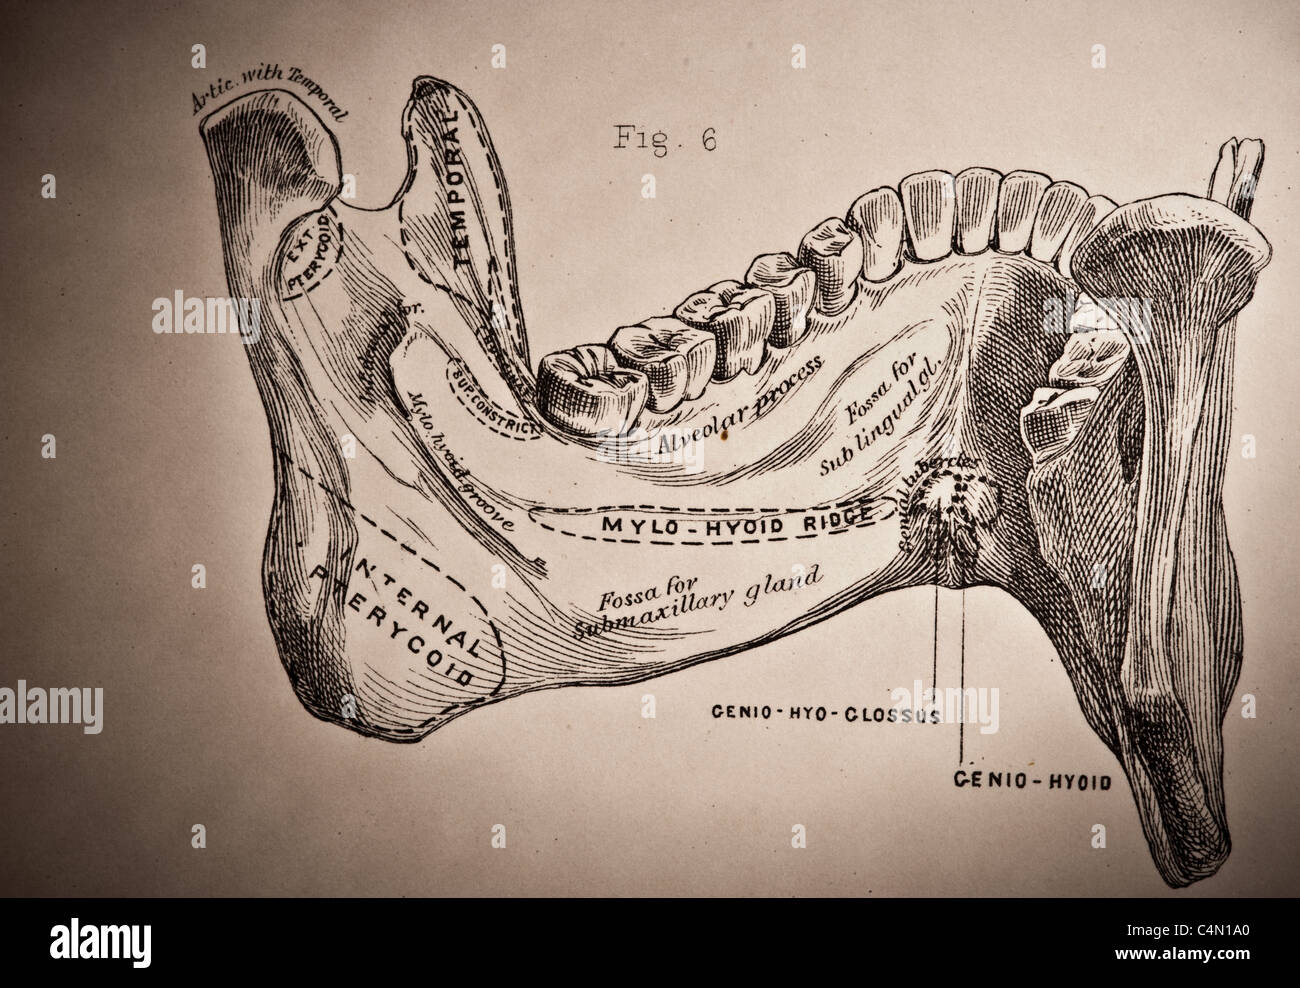 Illustration From Allens Human Anatomy Bones And Joints 1882 Stock